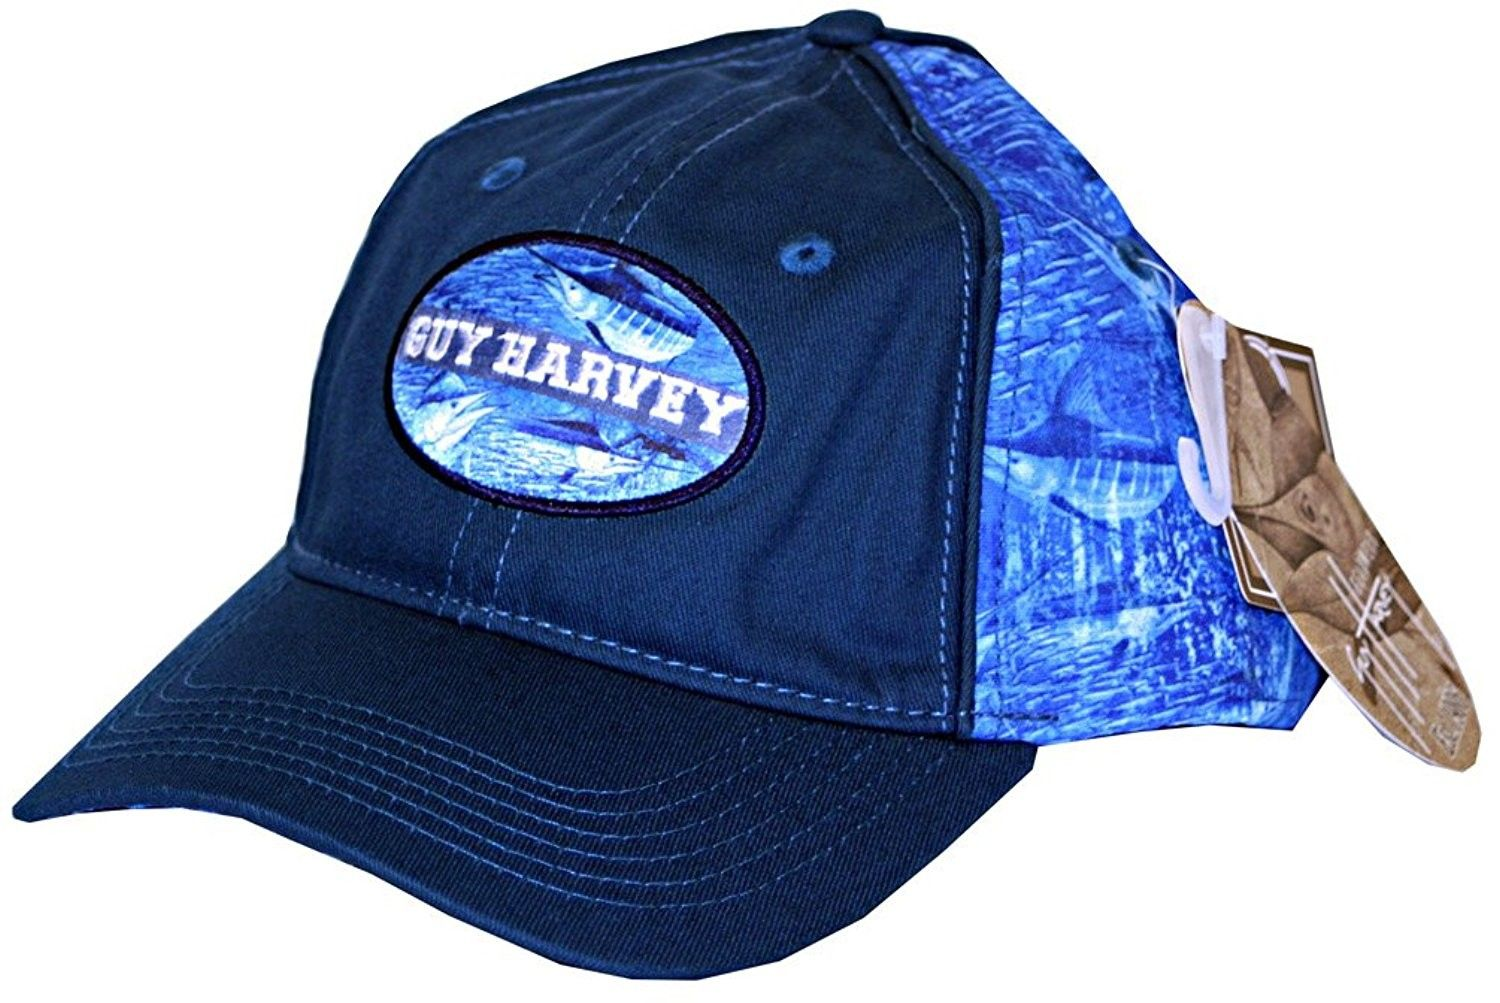 654573a4d86 Blue Marlin Camo Fitted Fishing Hat - C9120XYQJQX - Hats   Caps